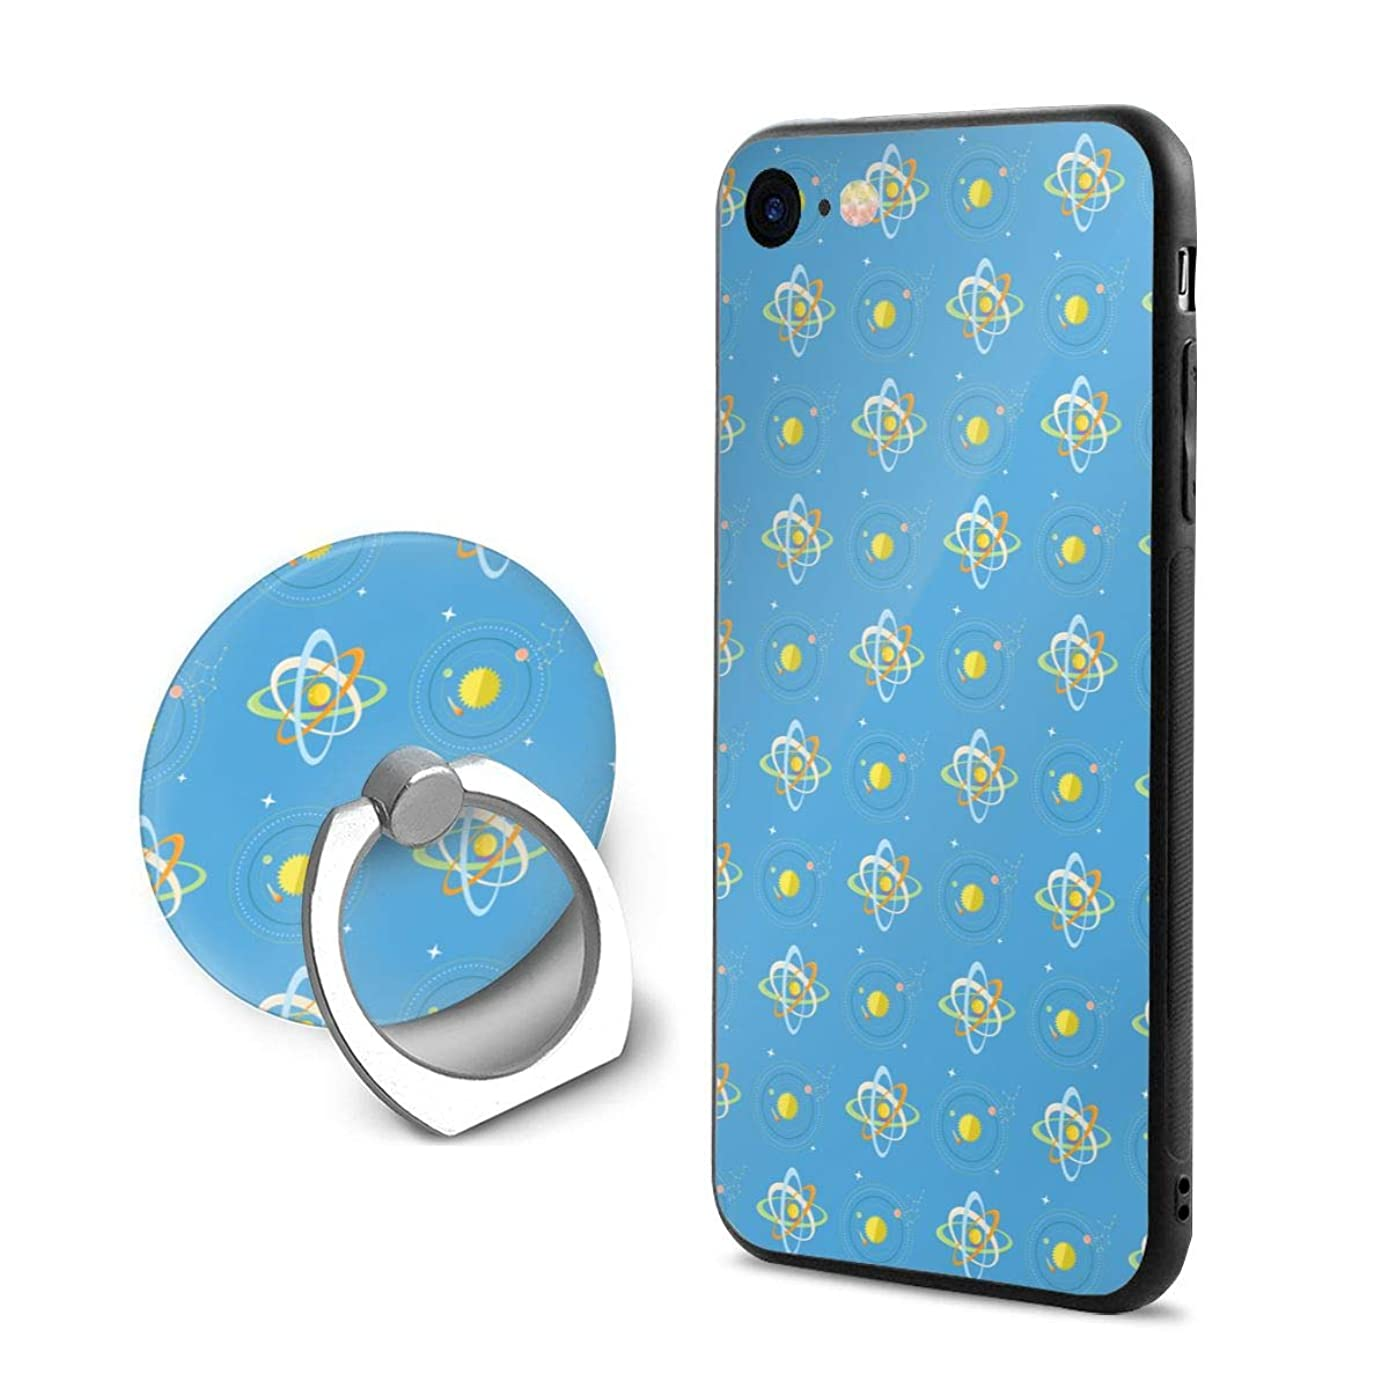 iPhone 7/8 Case Bright Solar System and Planets Rotating Blue 360 Degree Rotating Ring Kickstand Case Shockproof Anti-Scratch Impact Protection Function for iPhone 7/8